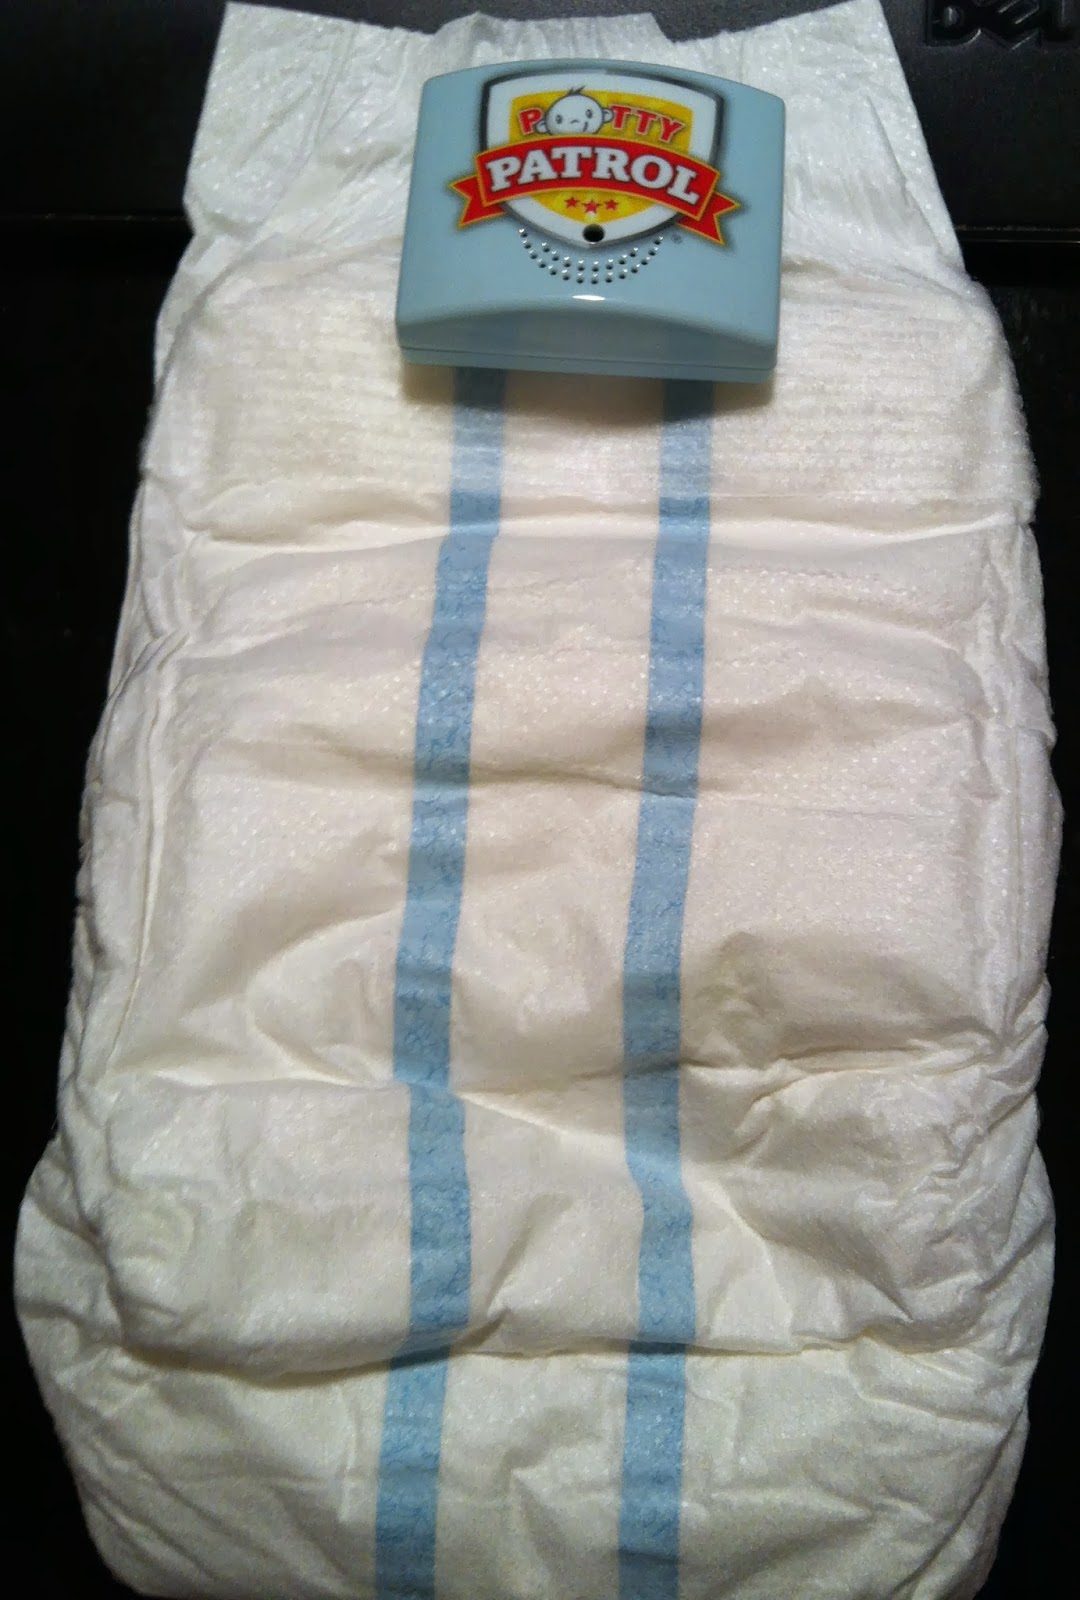 quality star diapers - photo #49